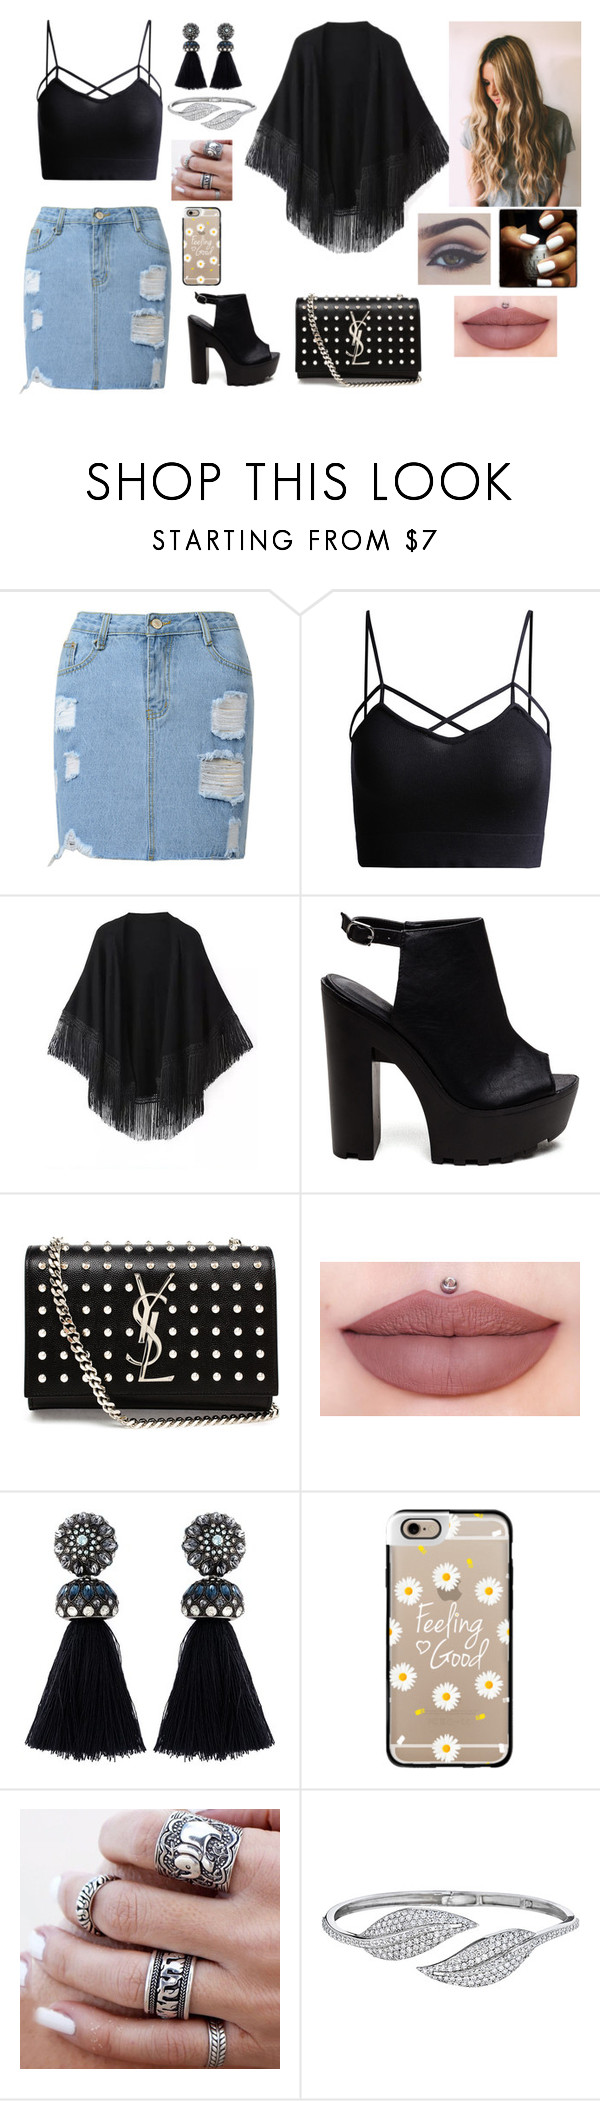 """disco"" by isarai on Polyvore featuring moda, Relaxfeel, Yves Saint Laurent, Lanvin, Casetify y Penny Preville"